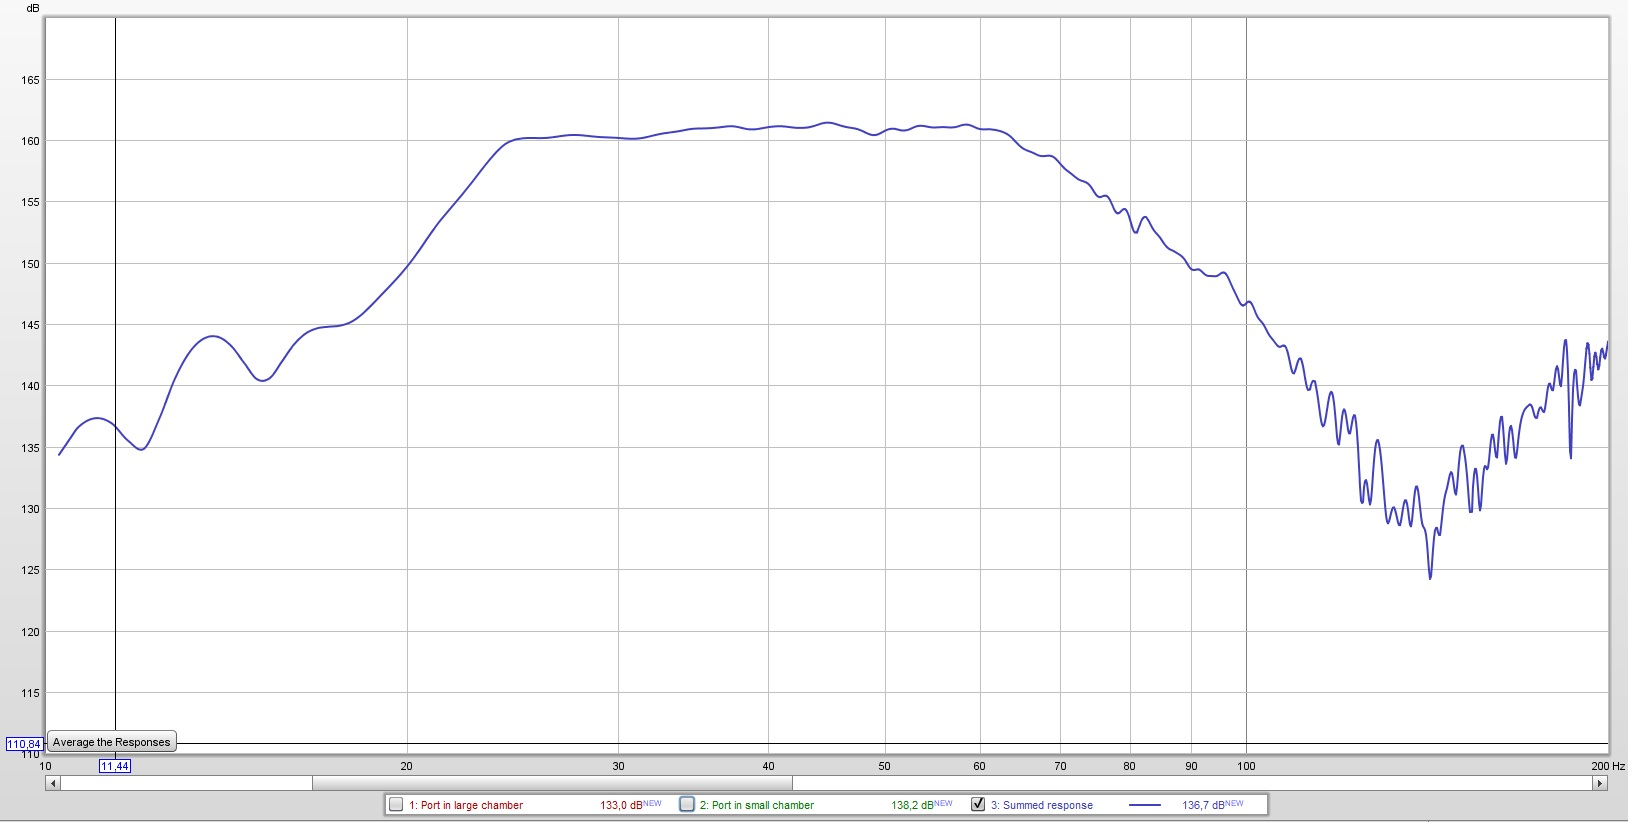 frequency response 6th order bandpass